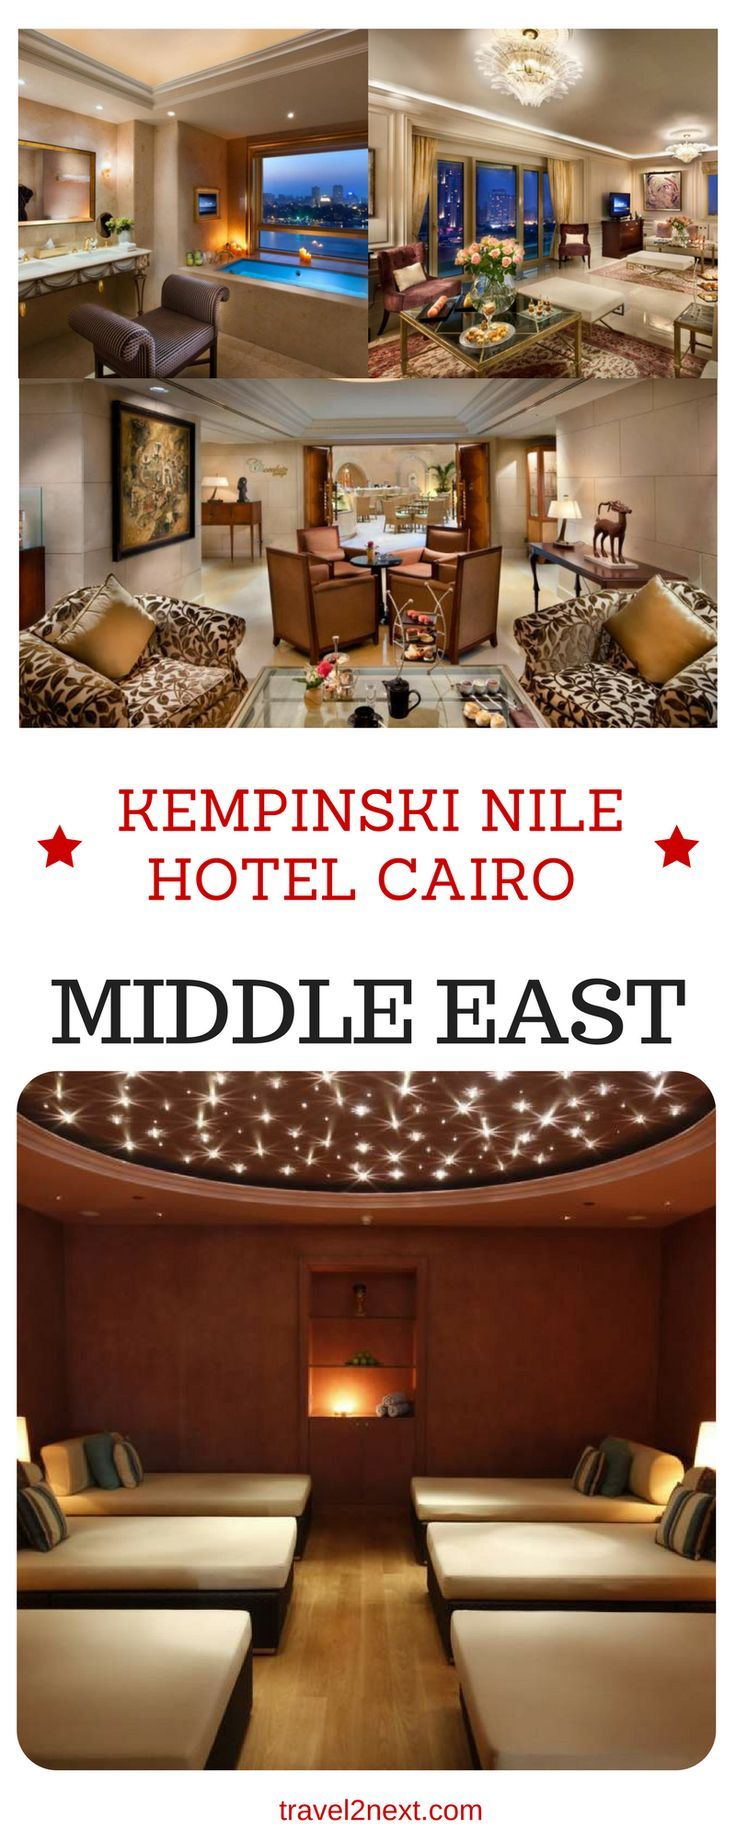 Kempinski Nile Hotel Cairo review. Soon after the Kempinski Nile Hotel Cairo opened, the Egyptian revolution took place (in January 2011) and business in Egypt grinded to a halt.